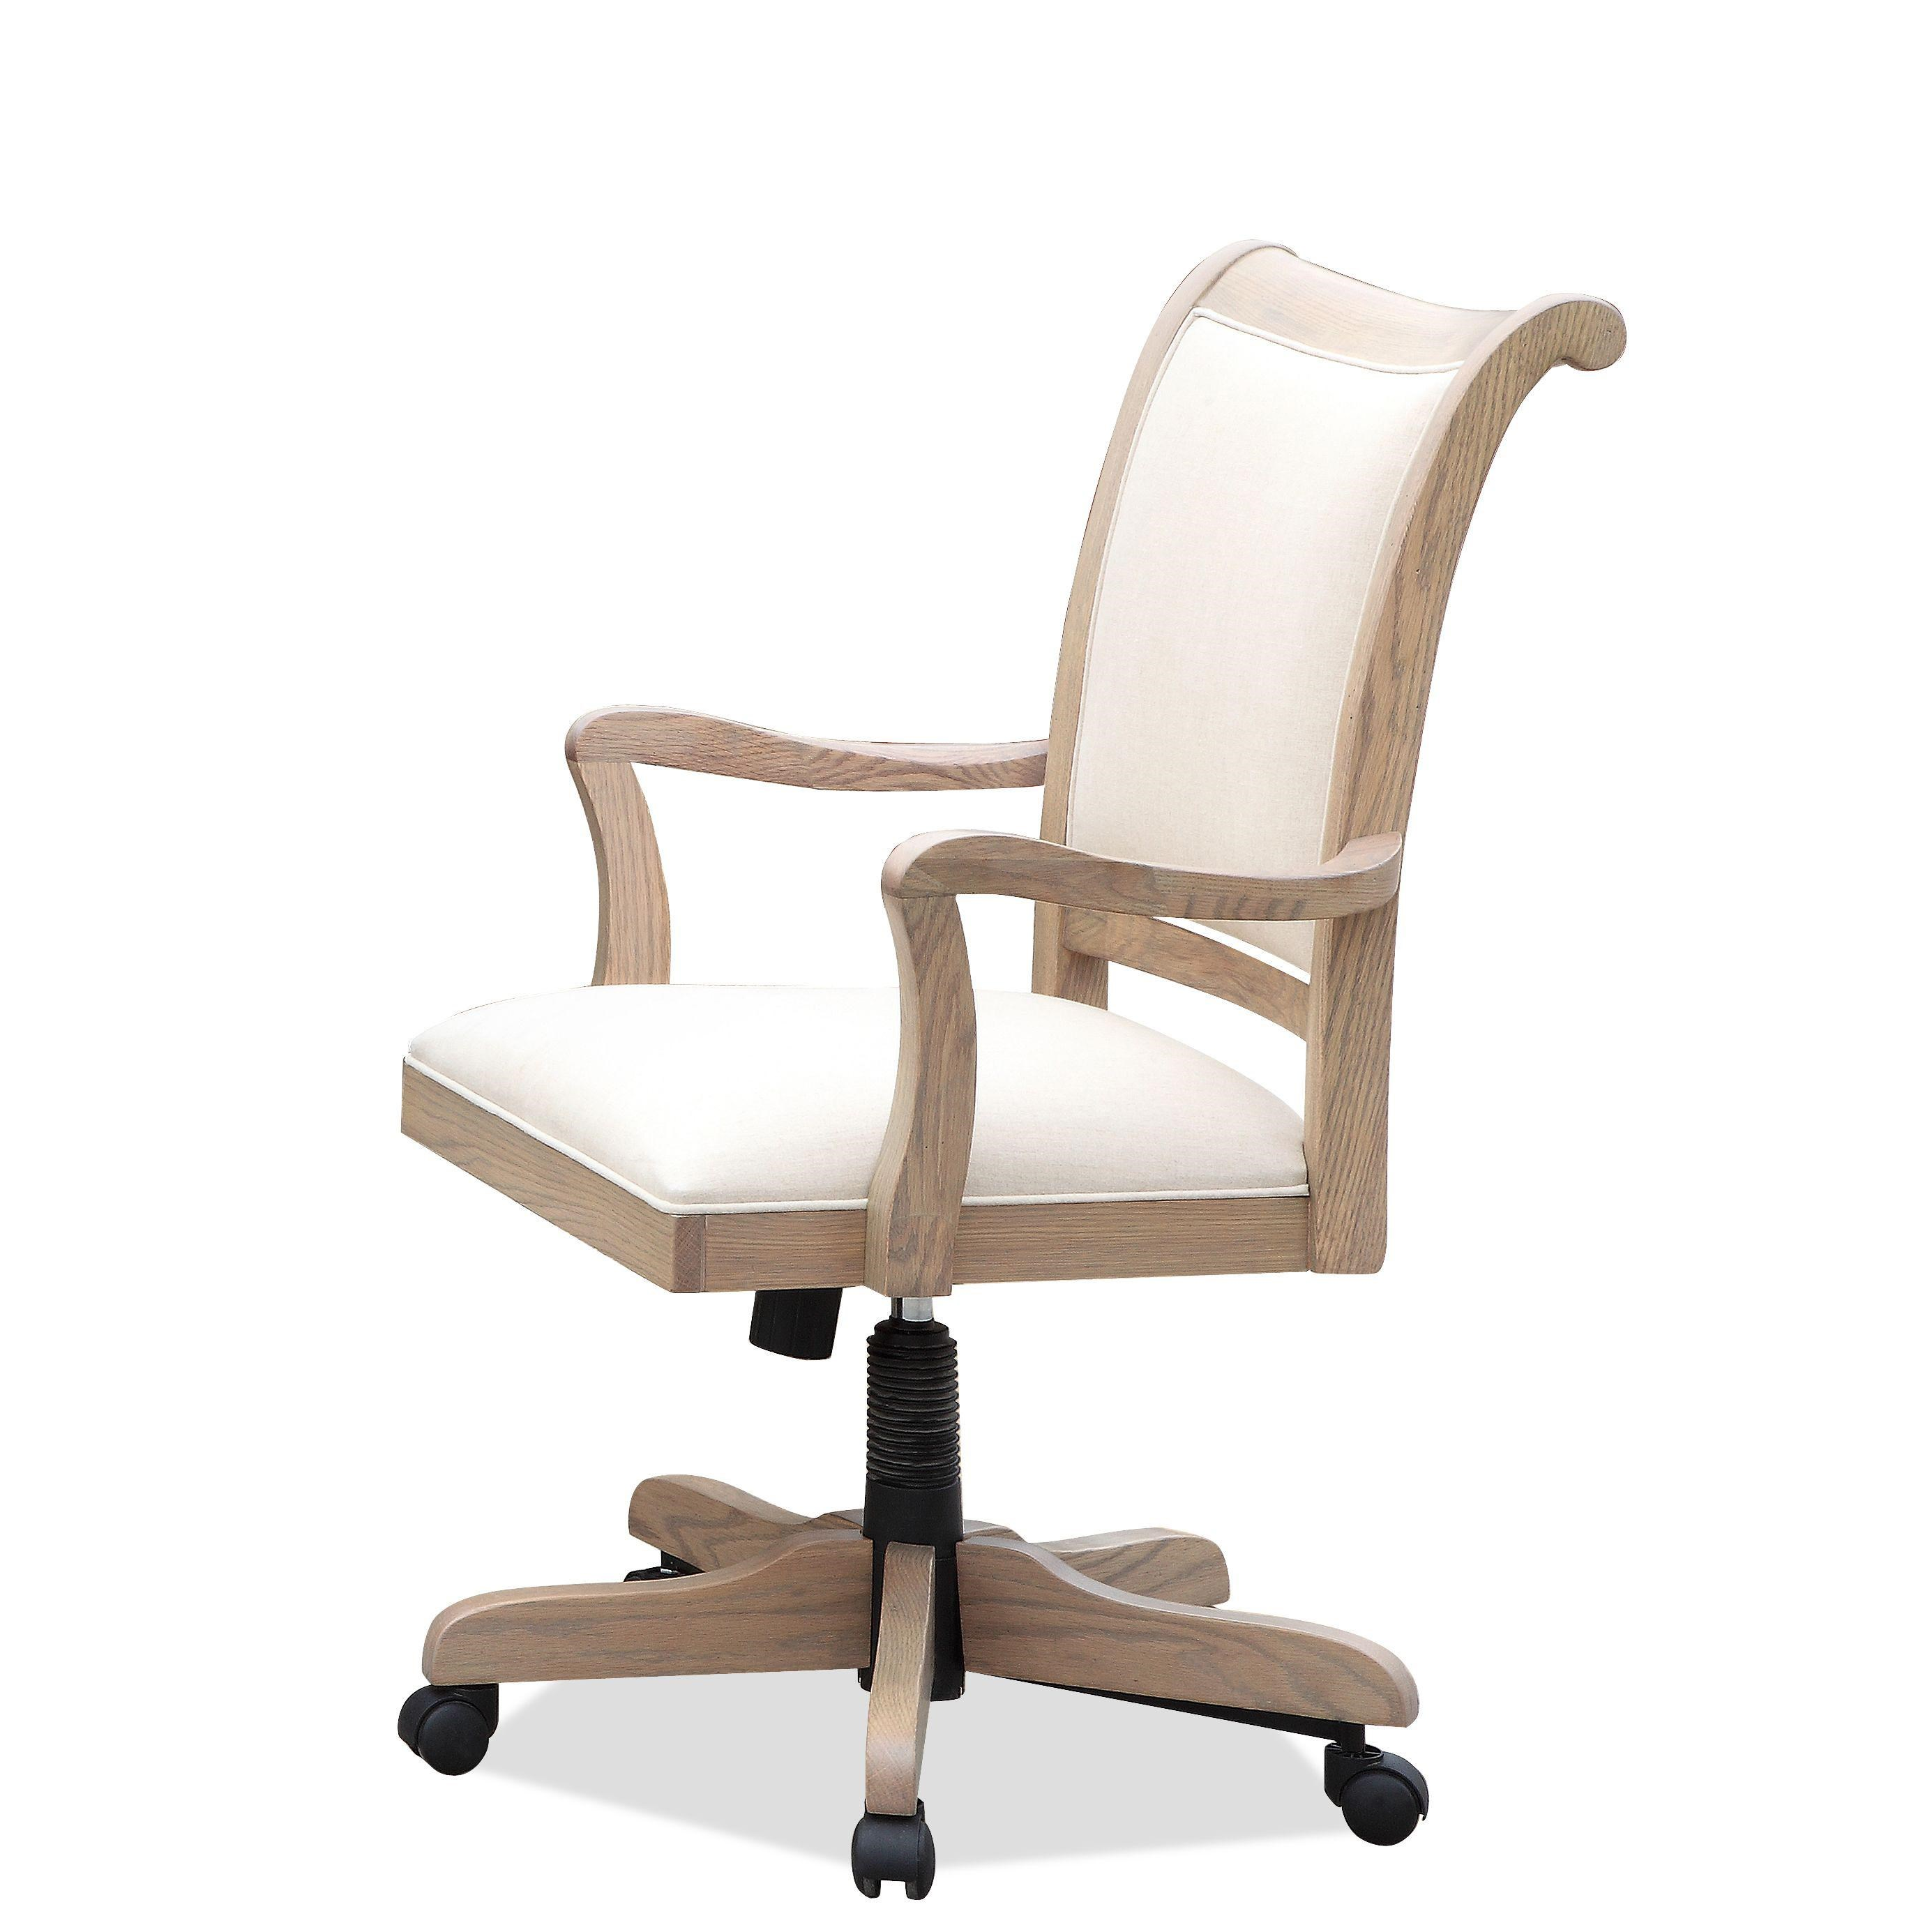 Riverside Furniture Coventry 32438 Adjustable Desk Chair | Hudsonu0027s  Furniture | Office Task Chair